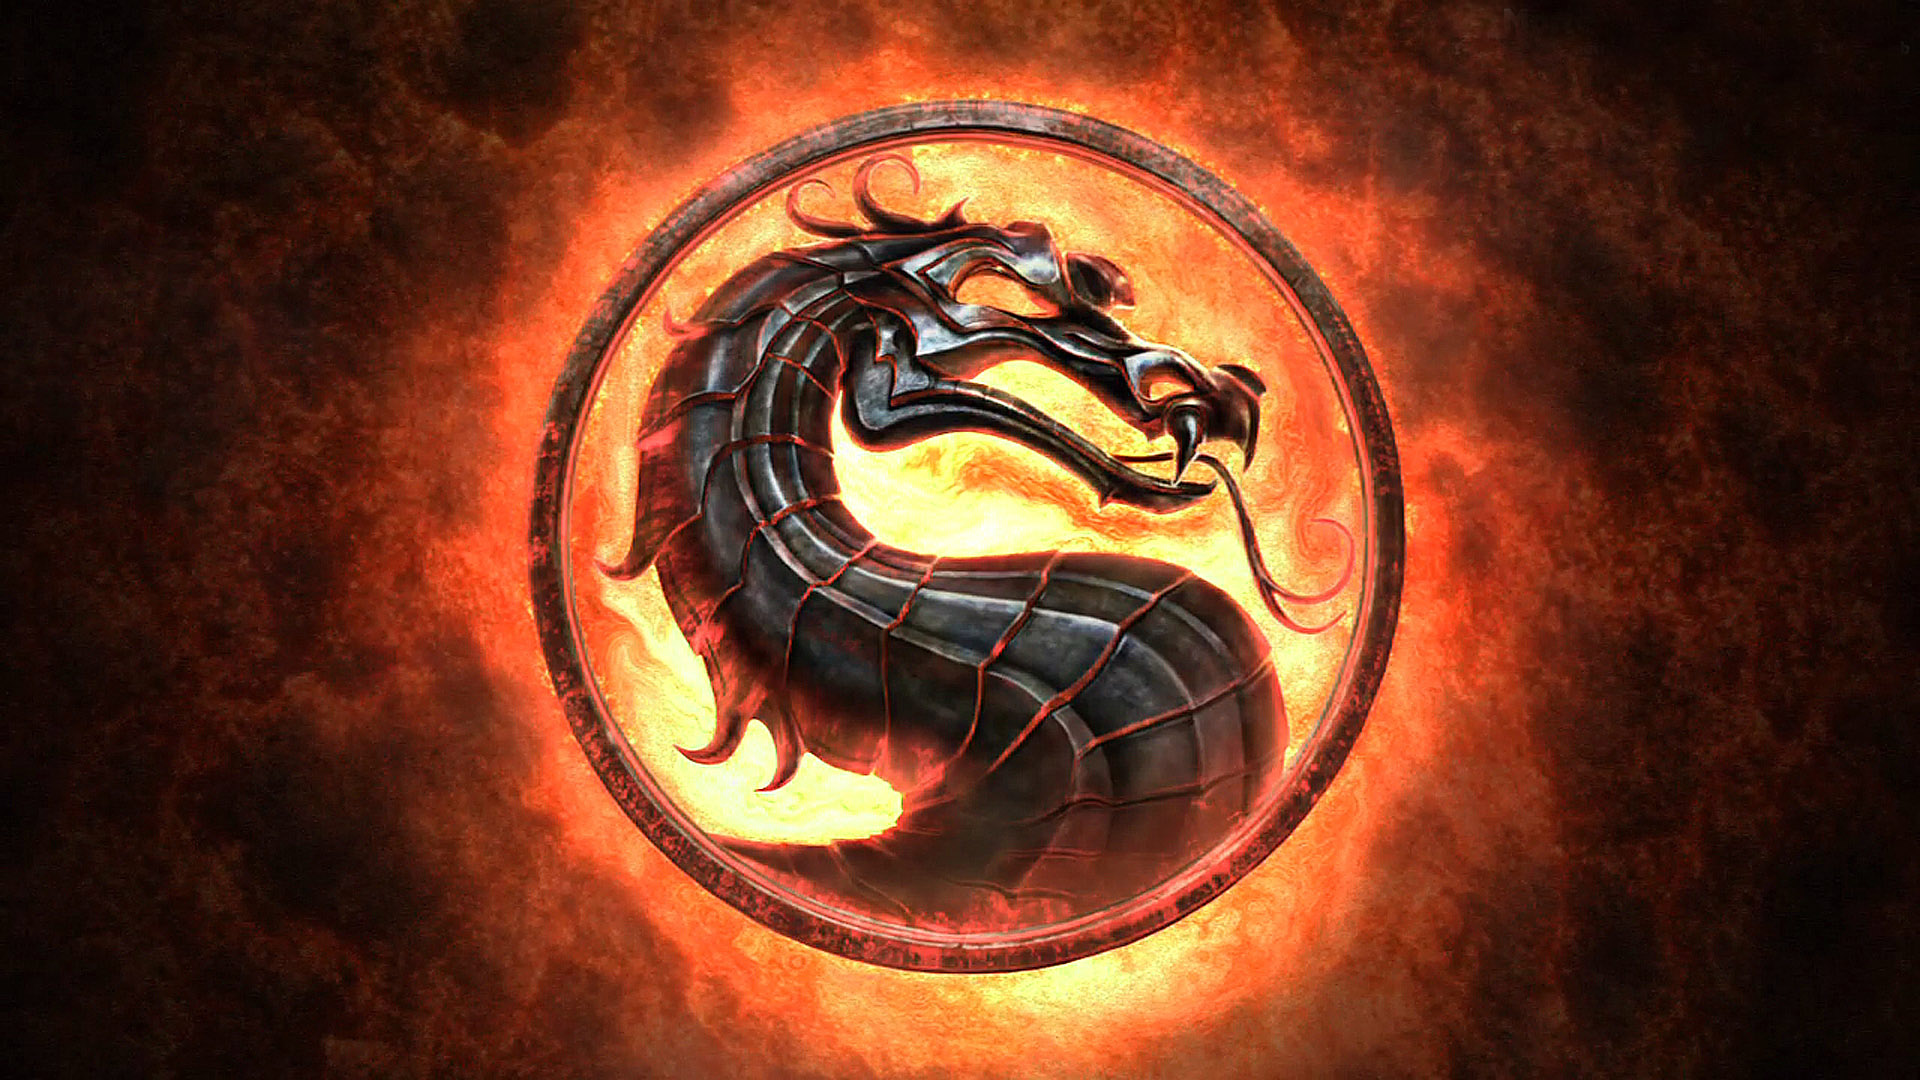 Mortal Kombat Komplete Edition announced for PC